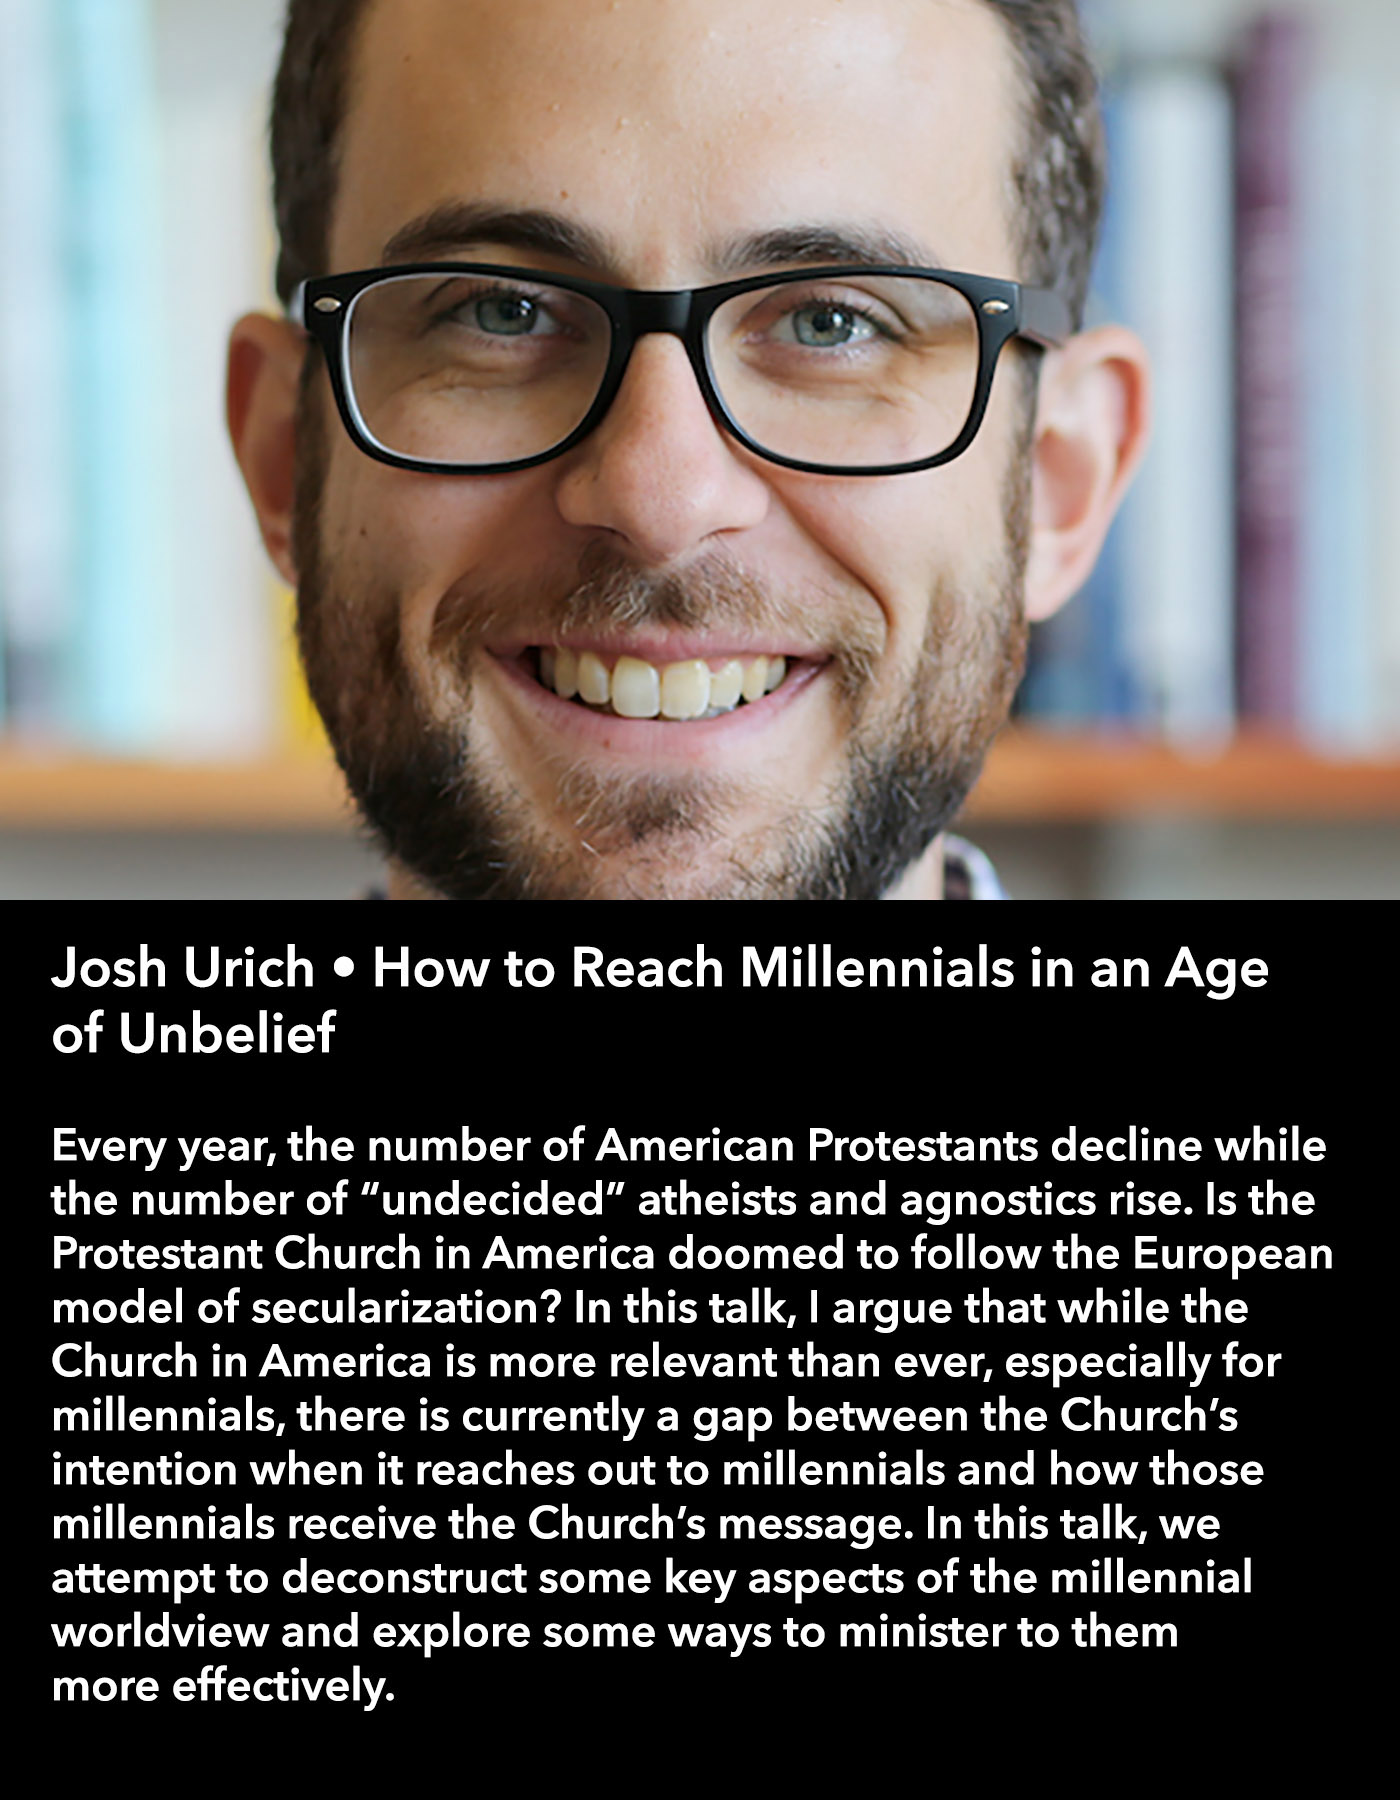 Josh Urich • How to Reach Millennials in an Age of Unbelief • Saturday Morning, March 18 • 10:30 – 11:45 am